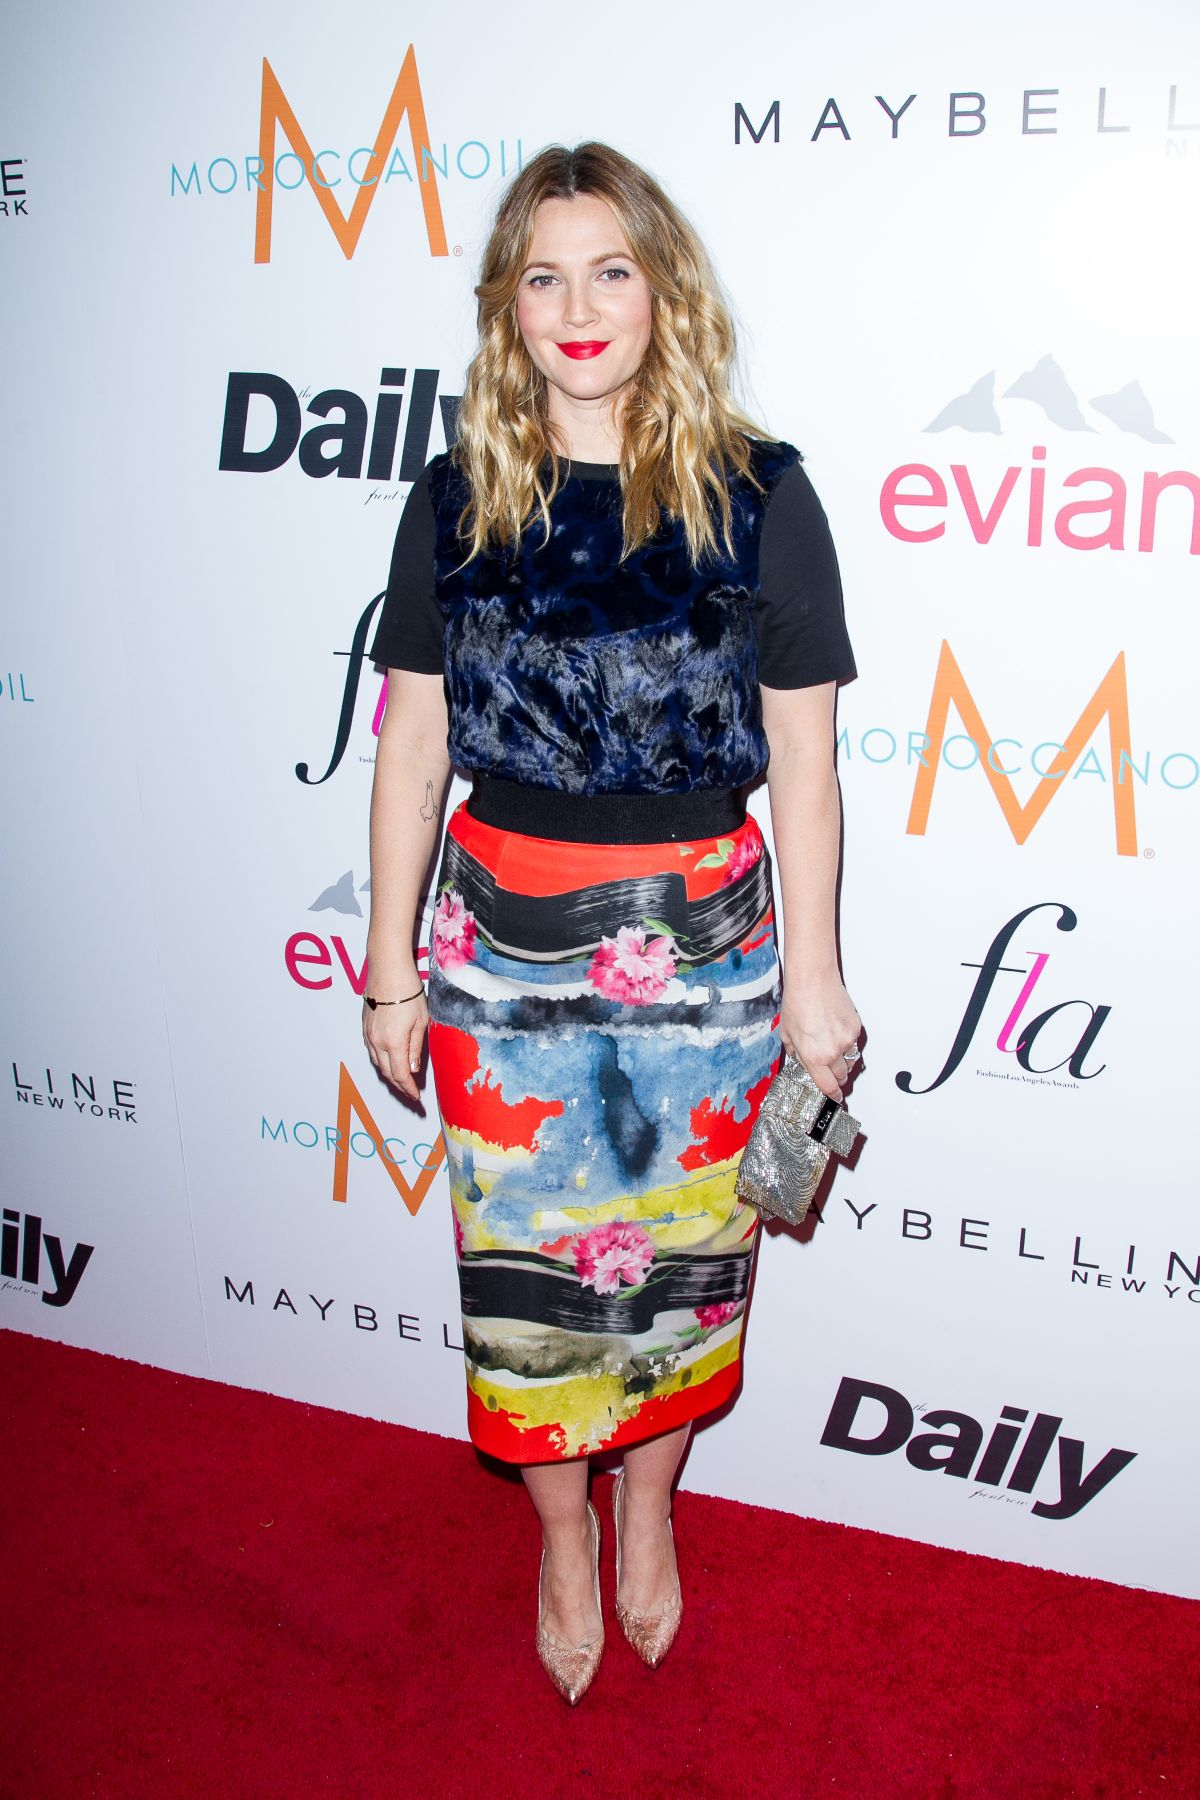 drew-barrymore-at-daily-front-row-fashion-los-angeles-awards-show_24